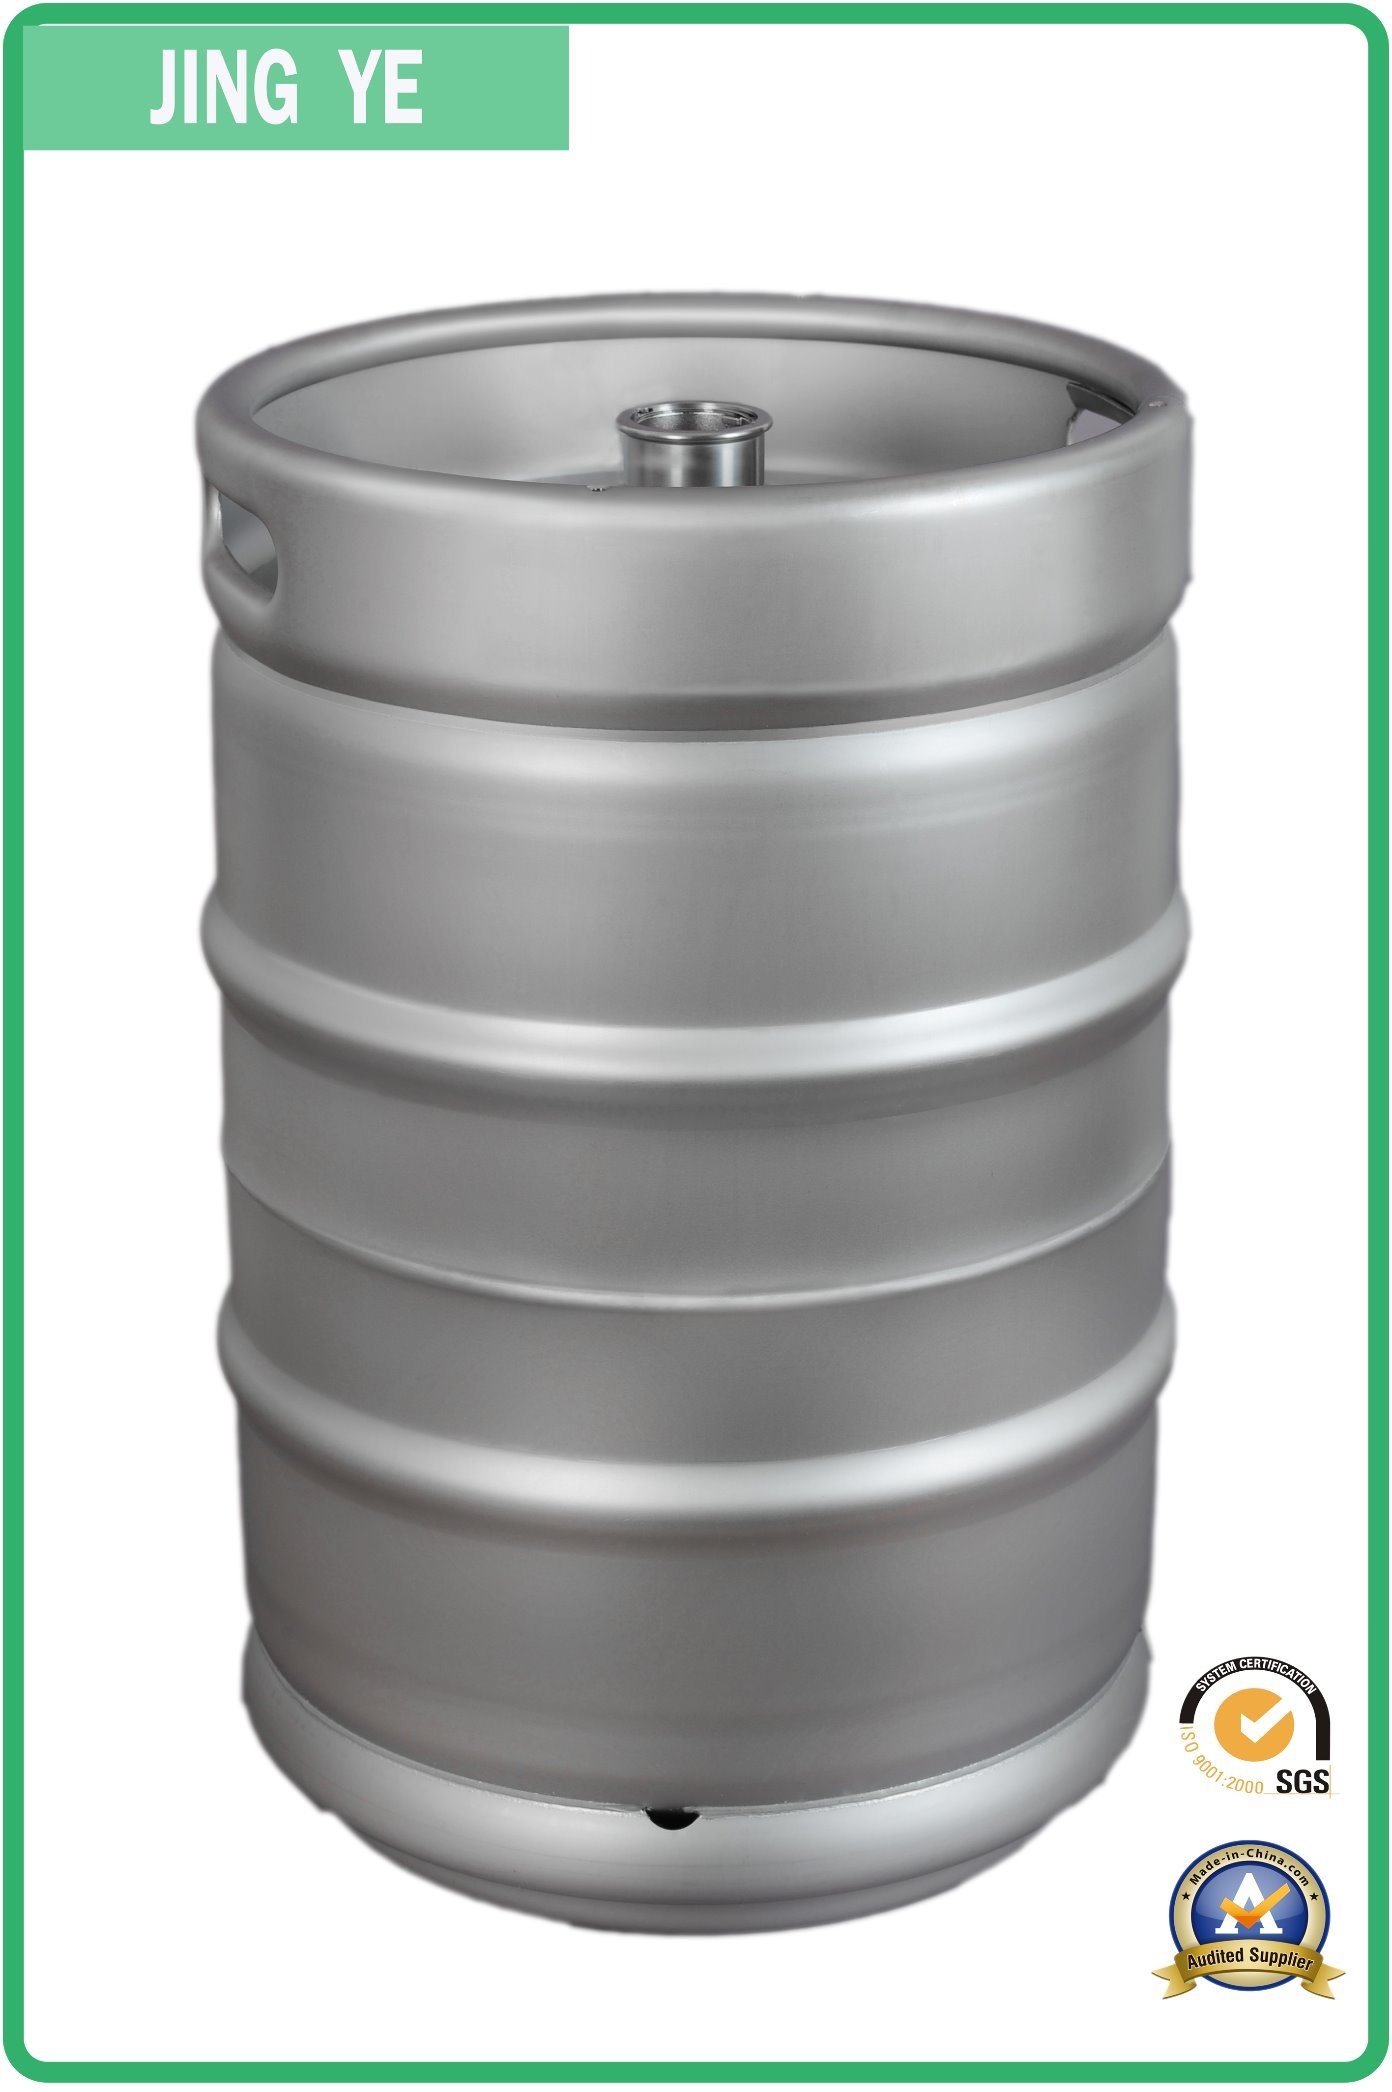 Us 1/2 Stackable Beer Keg 58.6L